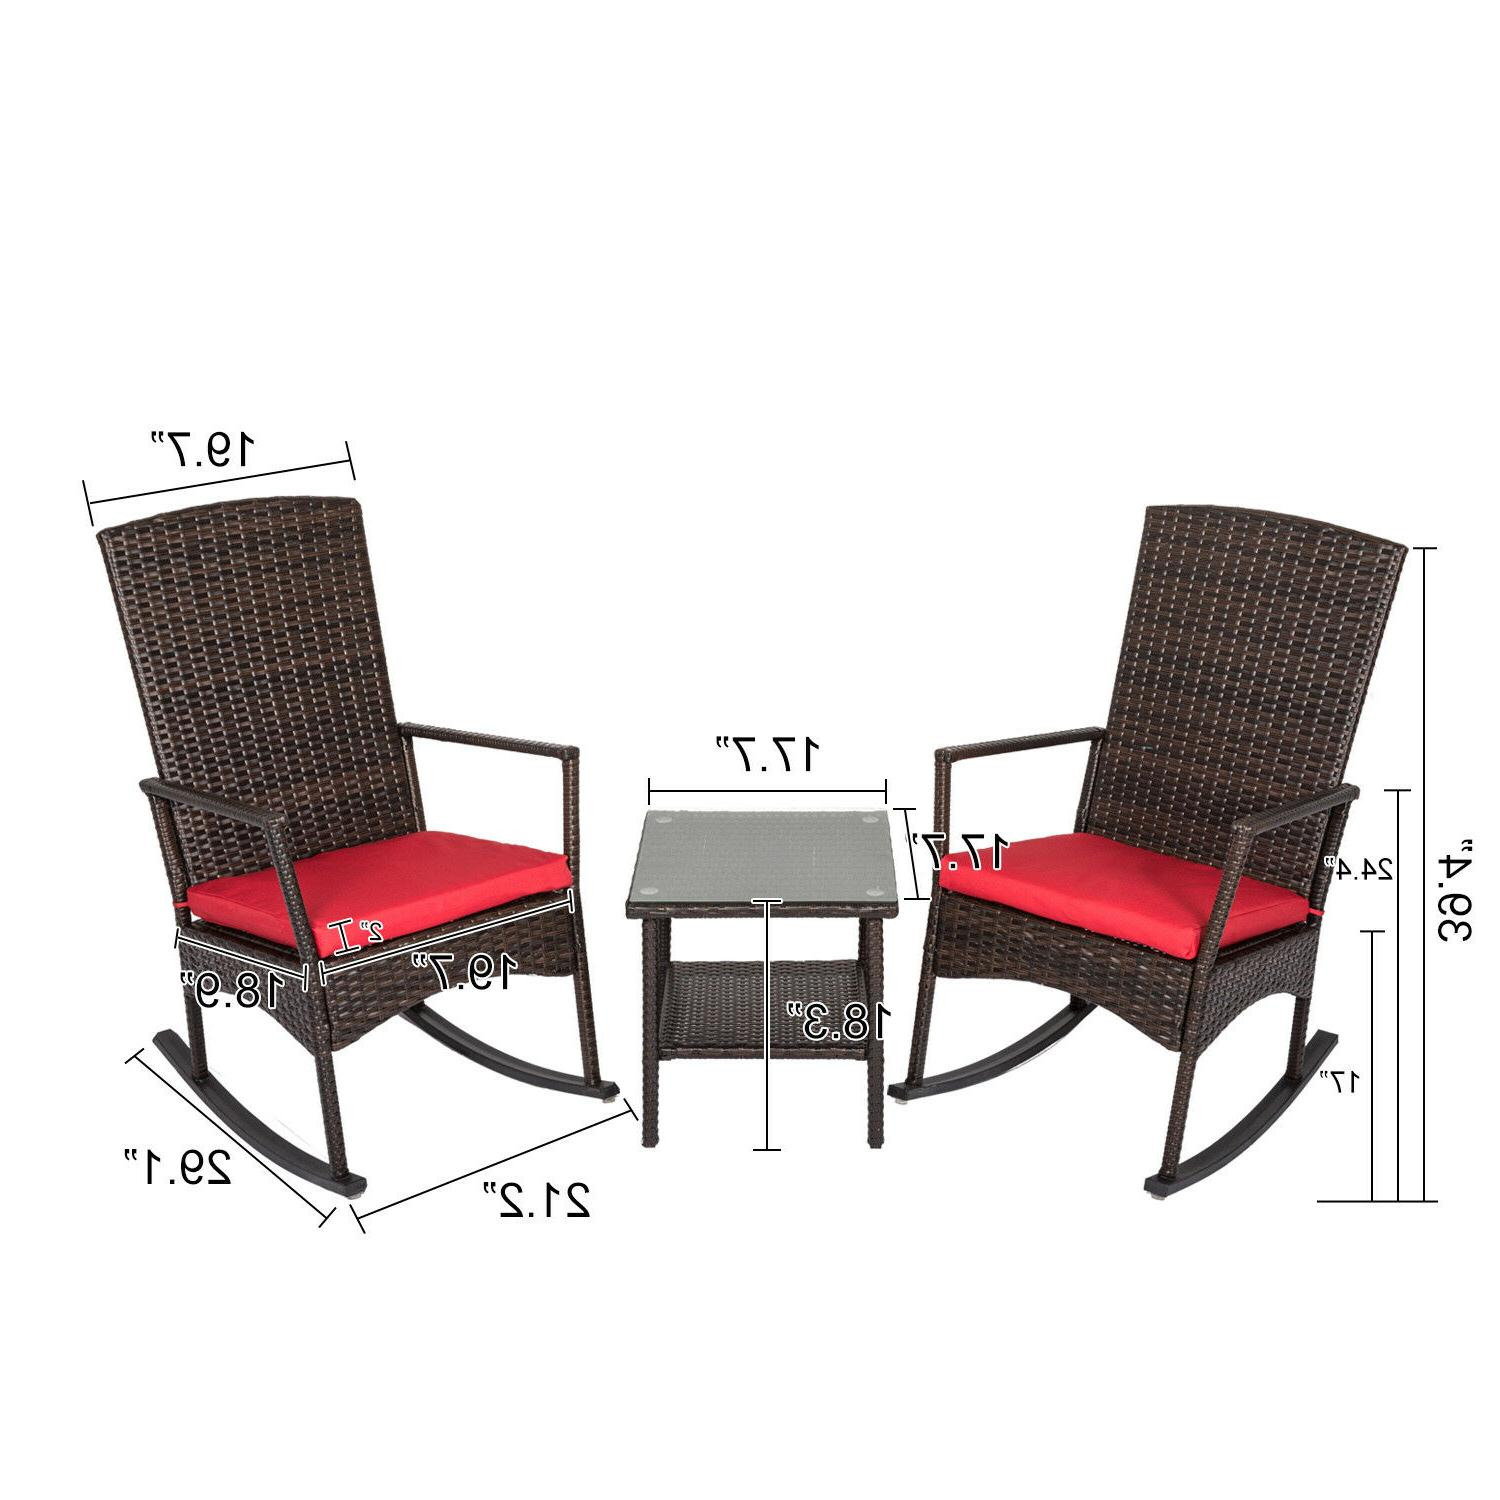 Outdoor Patio Chair Lounge Furniture W/ Cushion